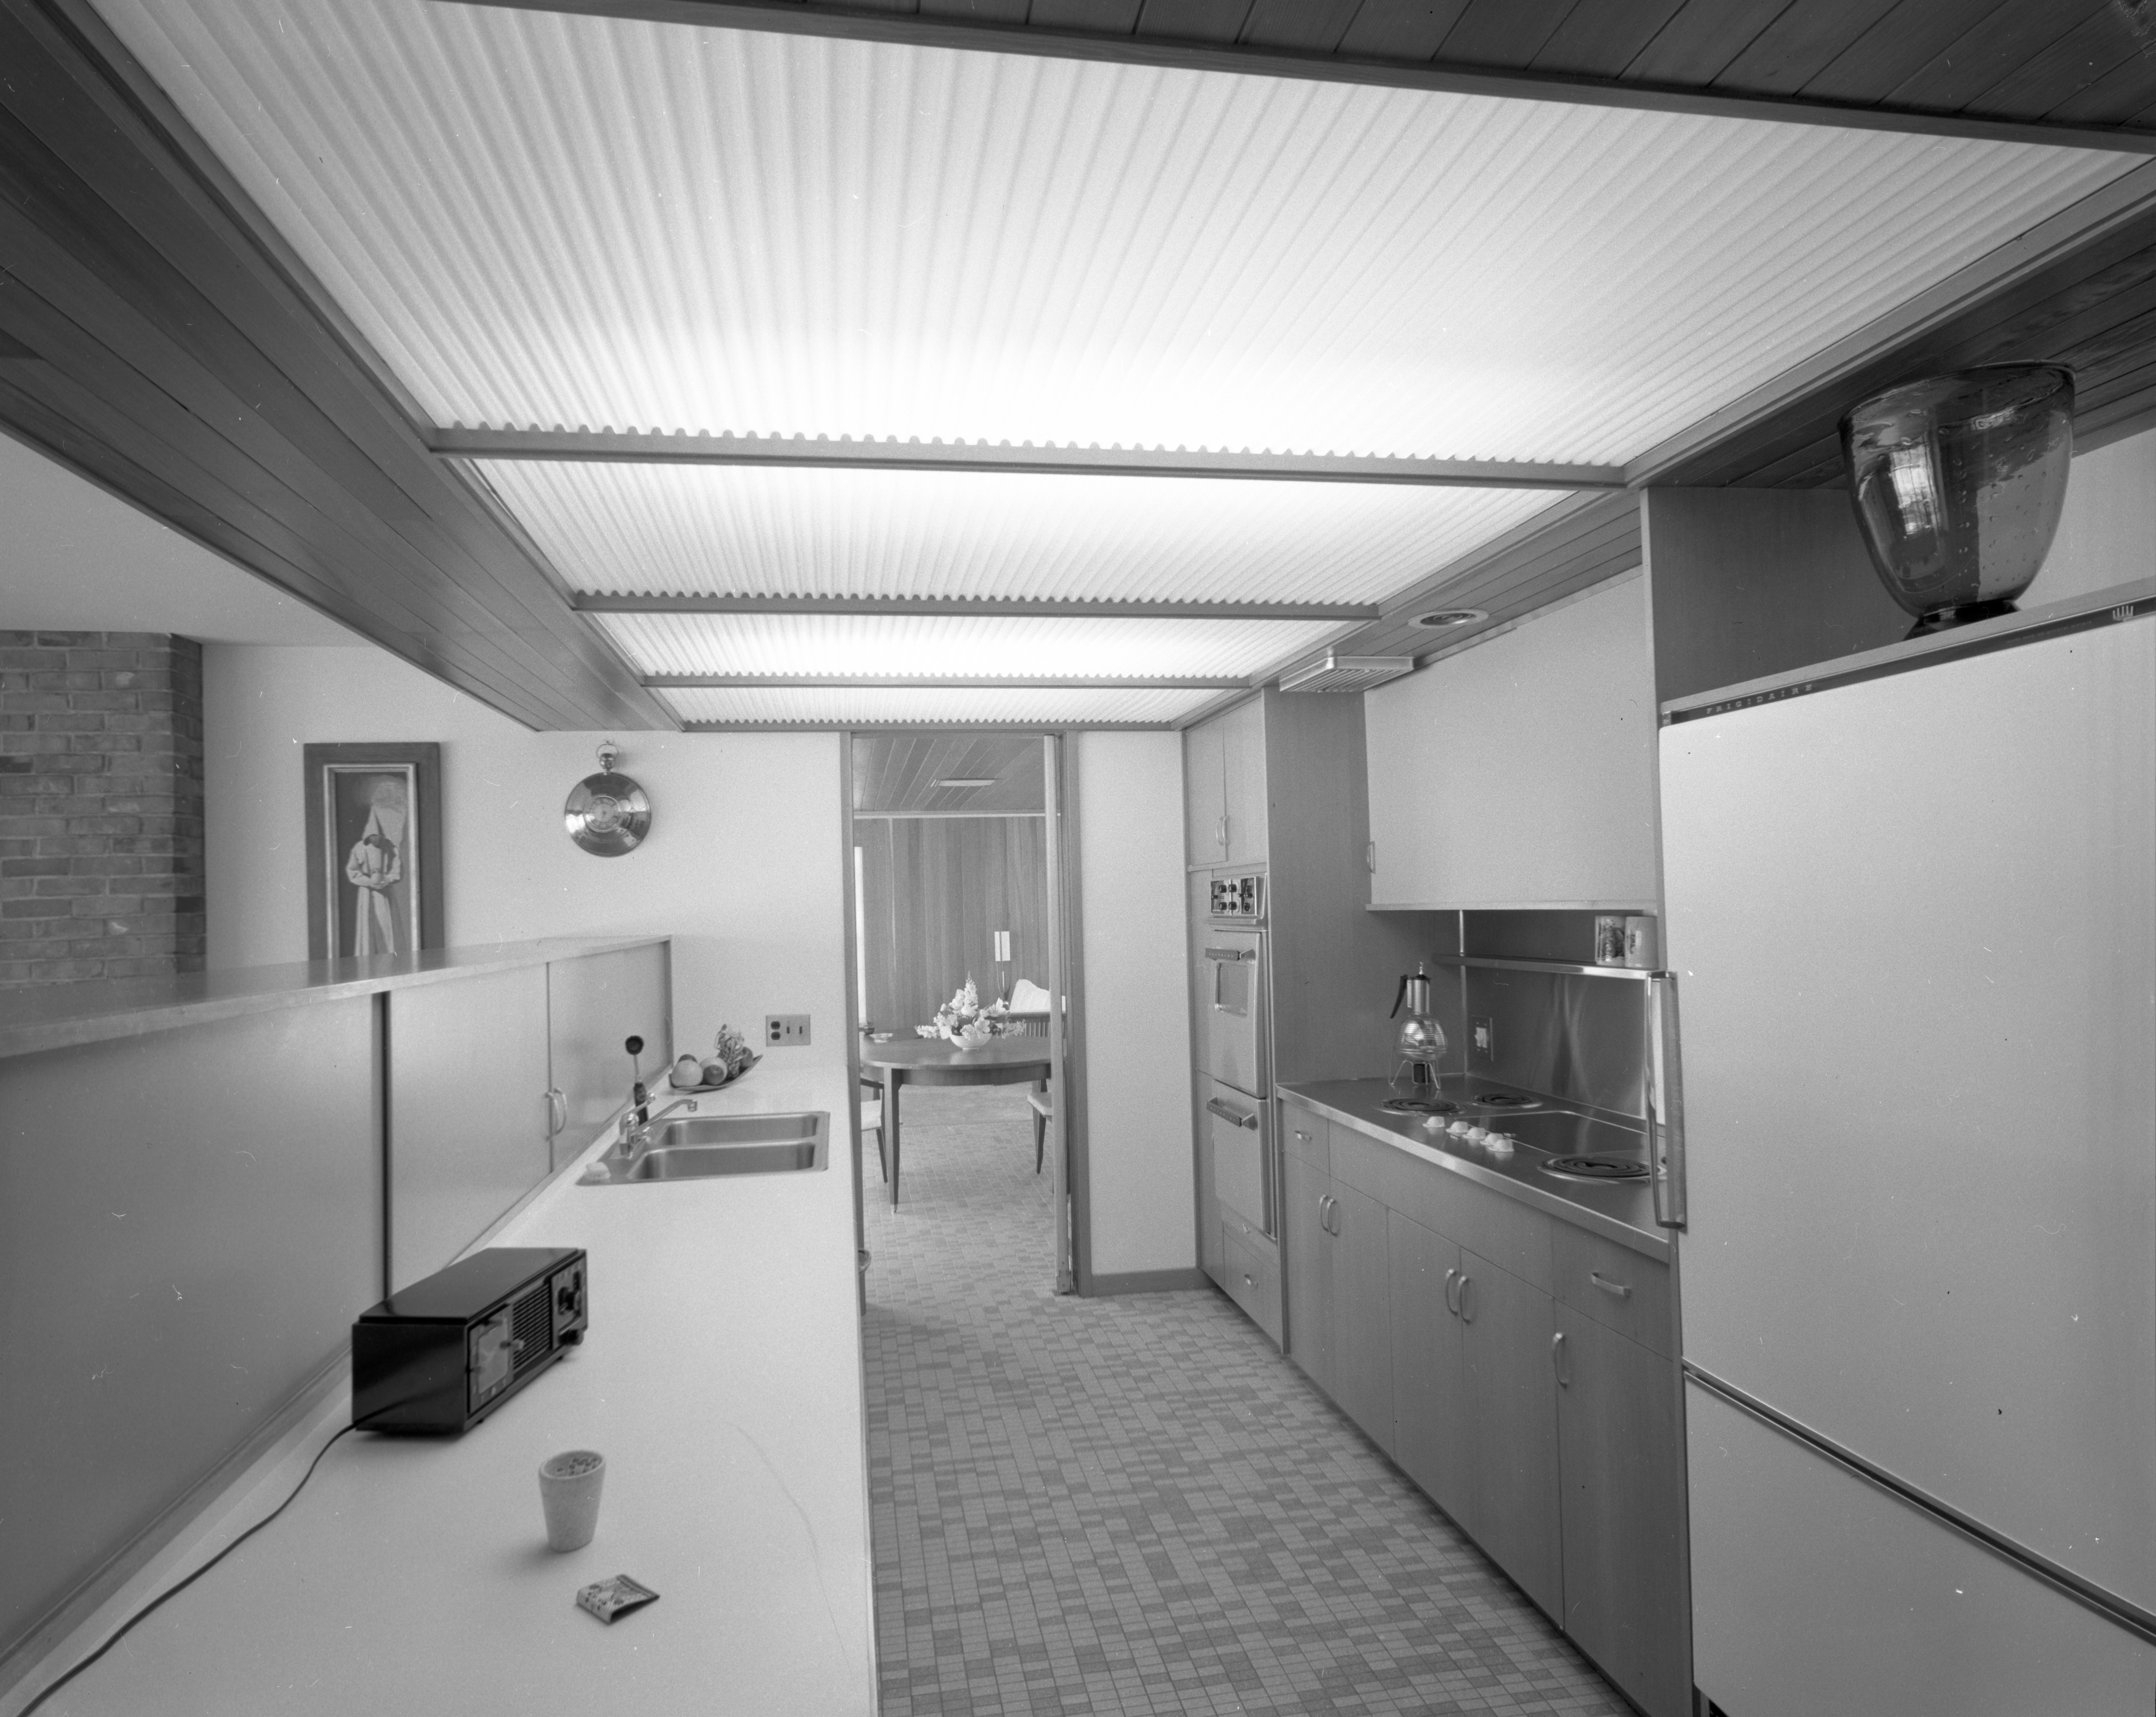 Plastic Ceiling and Skylight Features of Kitchen of Botch Home on Chestnut Rd , March 1959 image